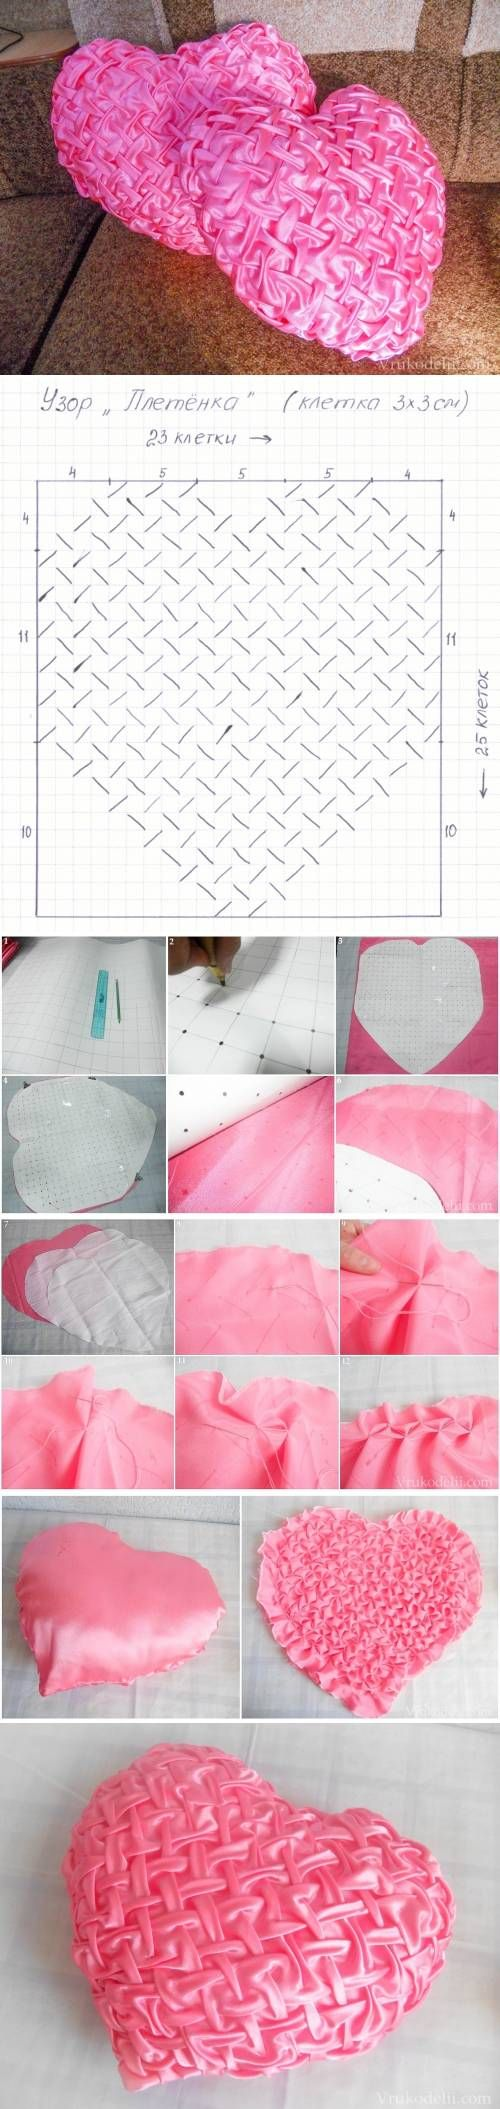 DIY Stylish Heart Pillow